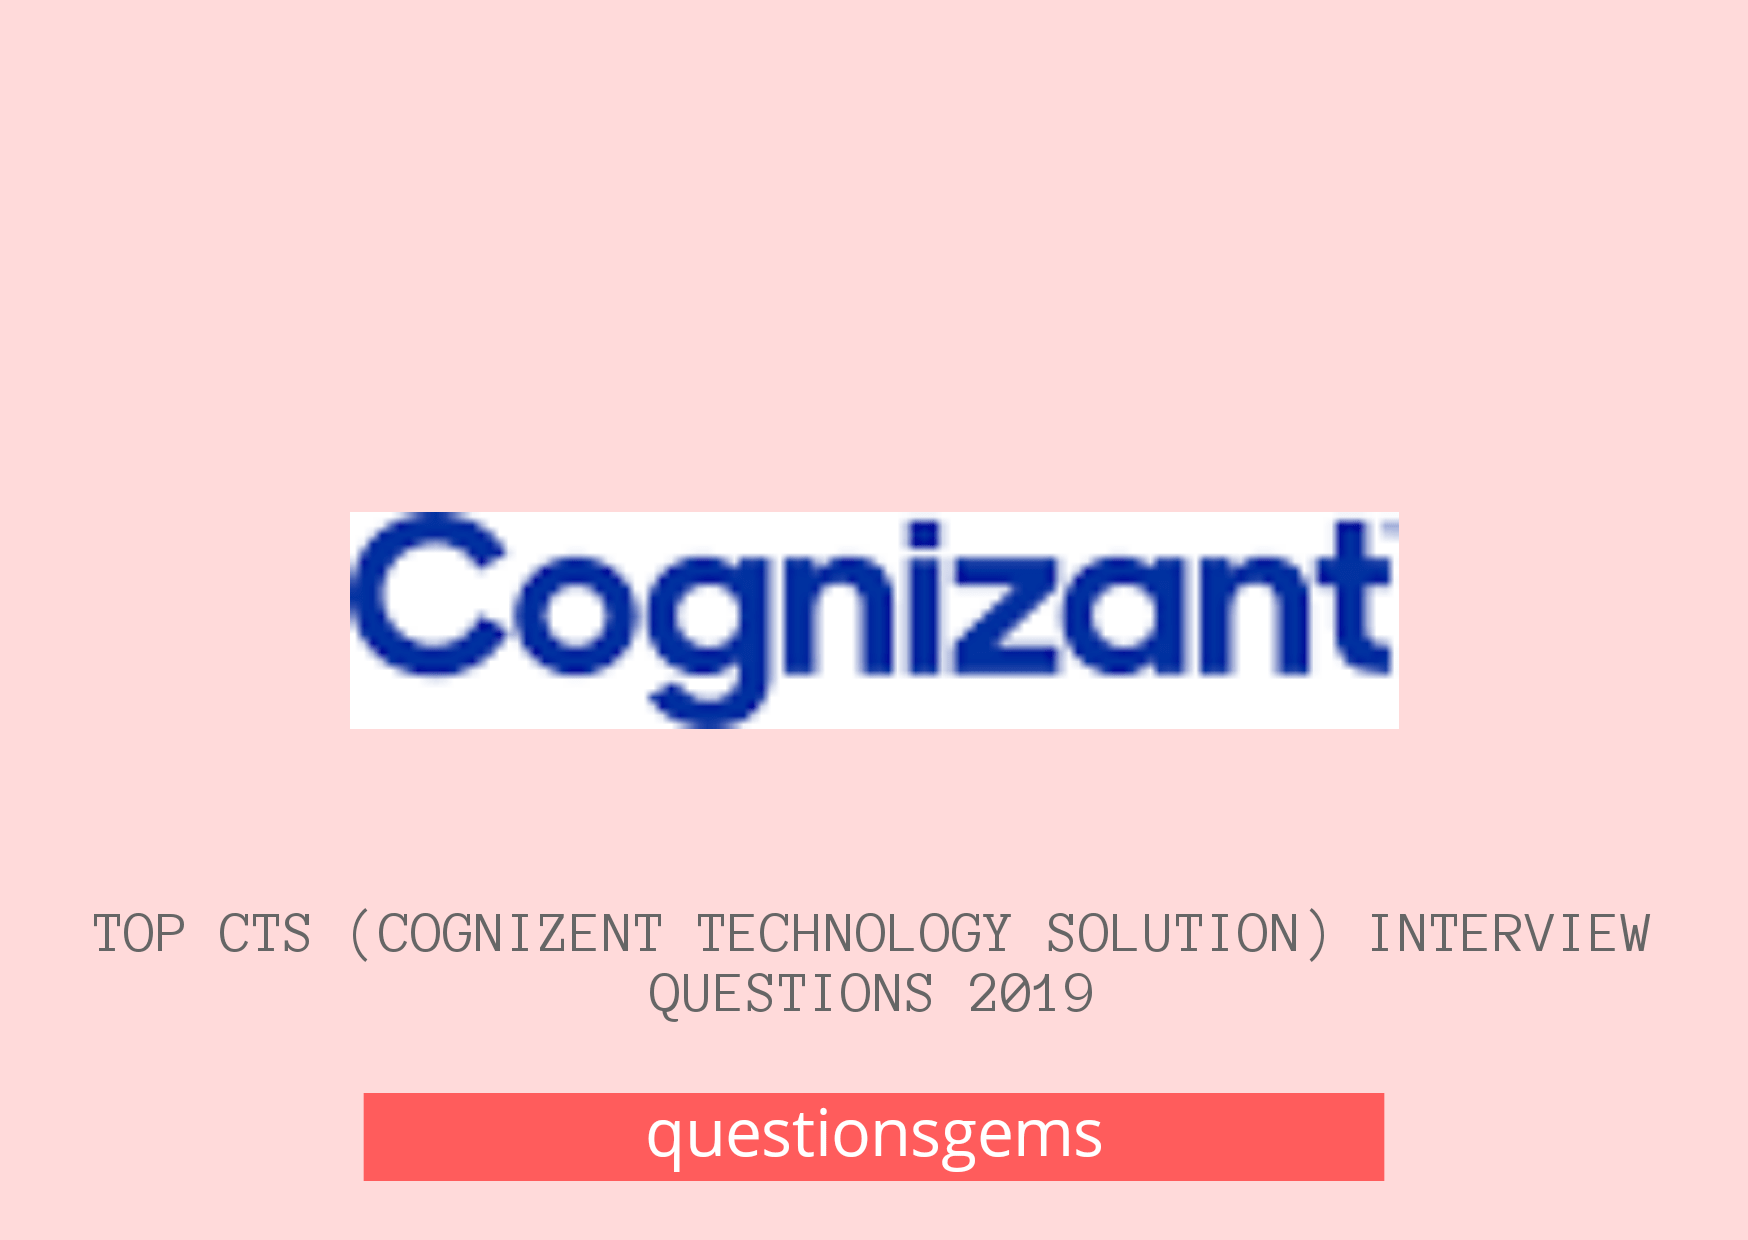 Top CTS Cognizant Technology Solution Interview Questions 2019